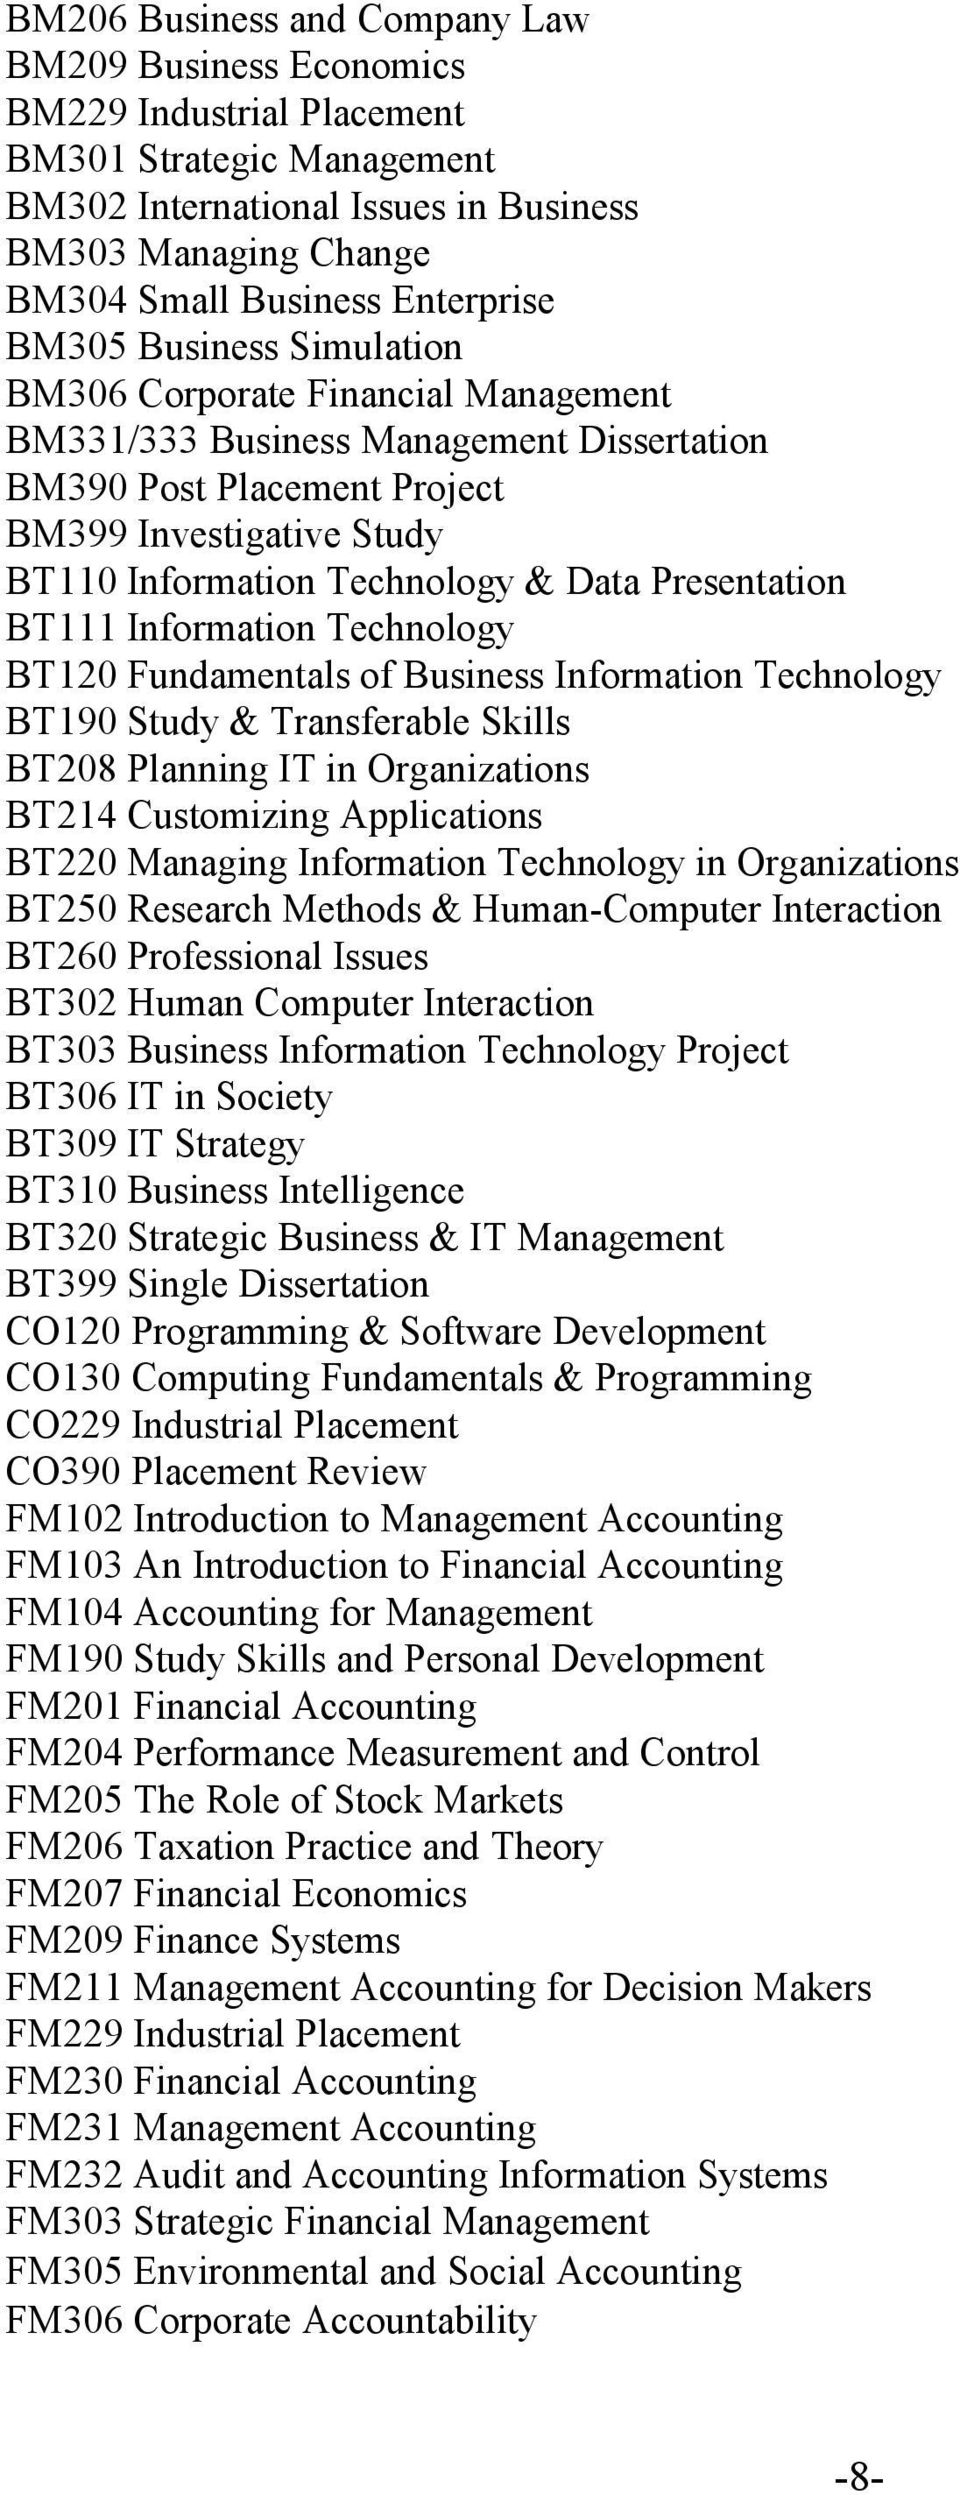 Technology & Data Presentation BT111 Information Technology BT120 Fundamentals of Business Information Technology BT190 Study & Transferable Skills BT208 Planning IT in Organizations BT214